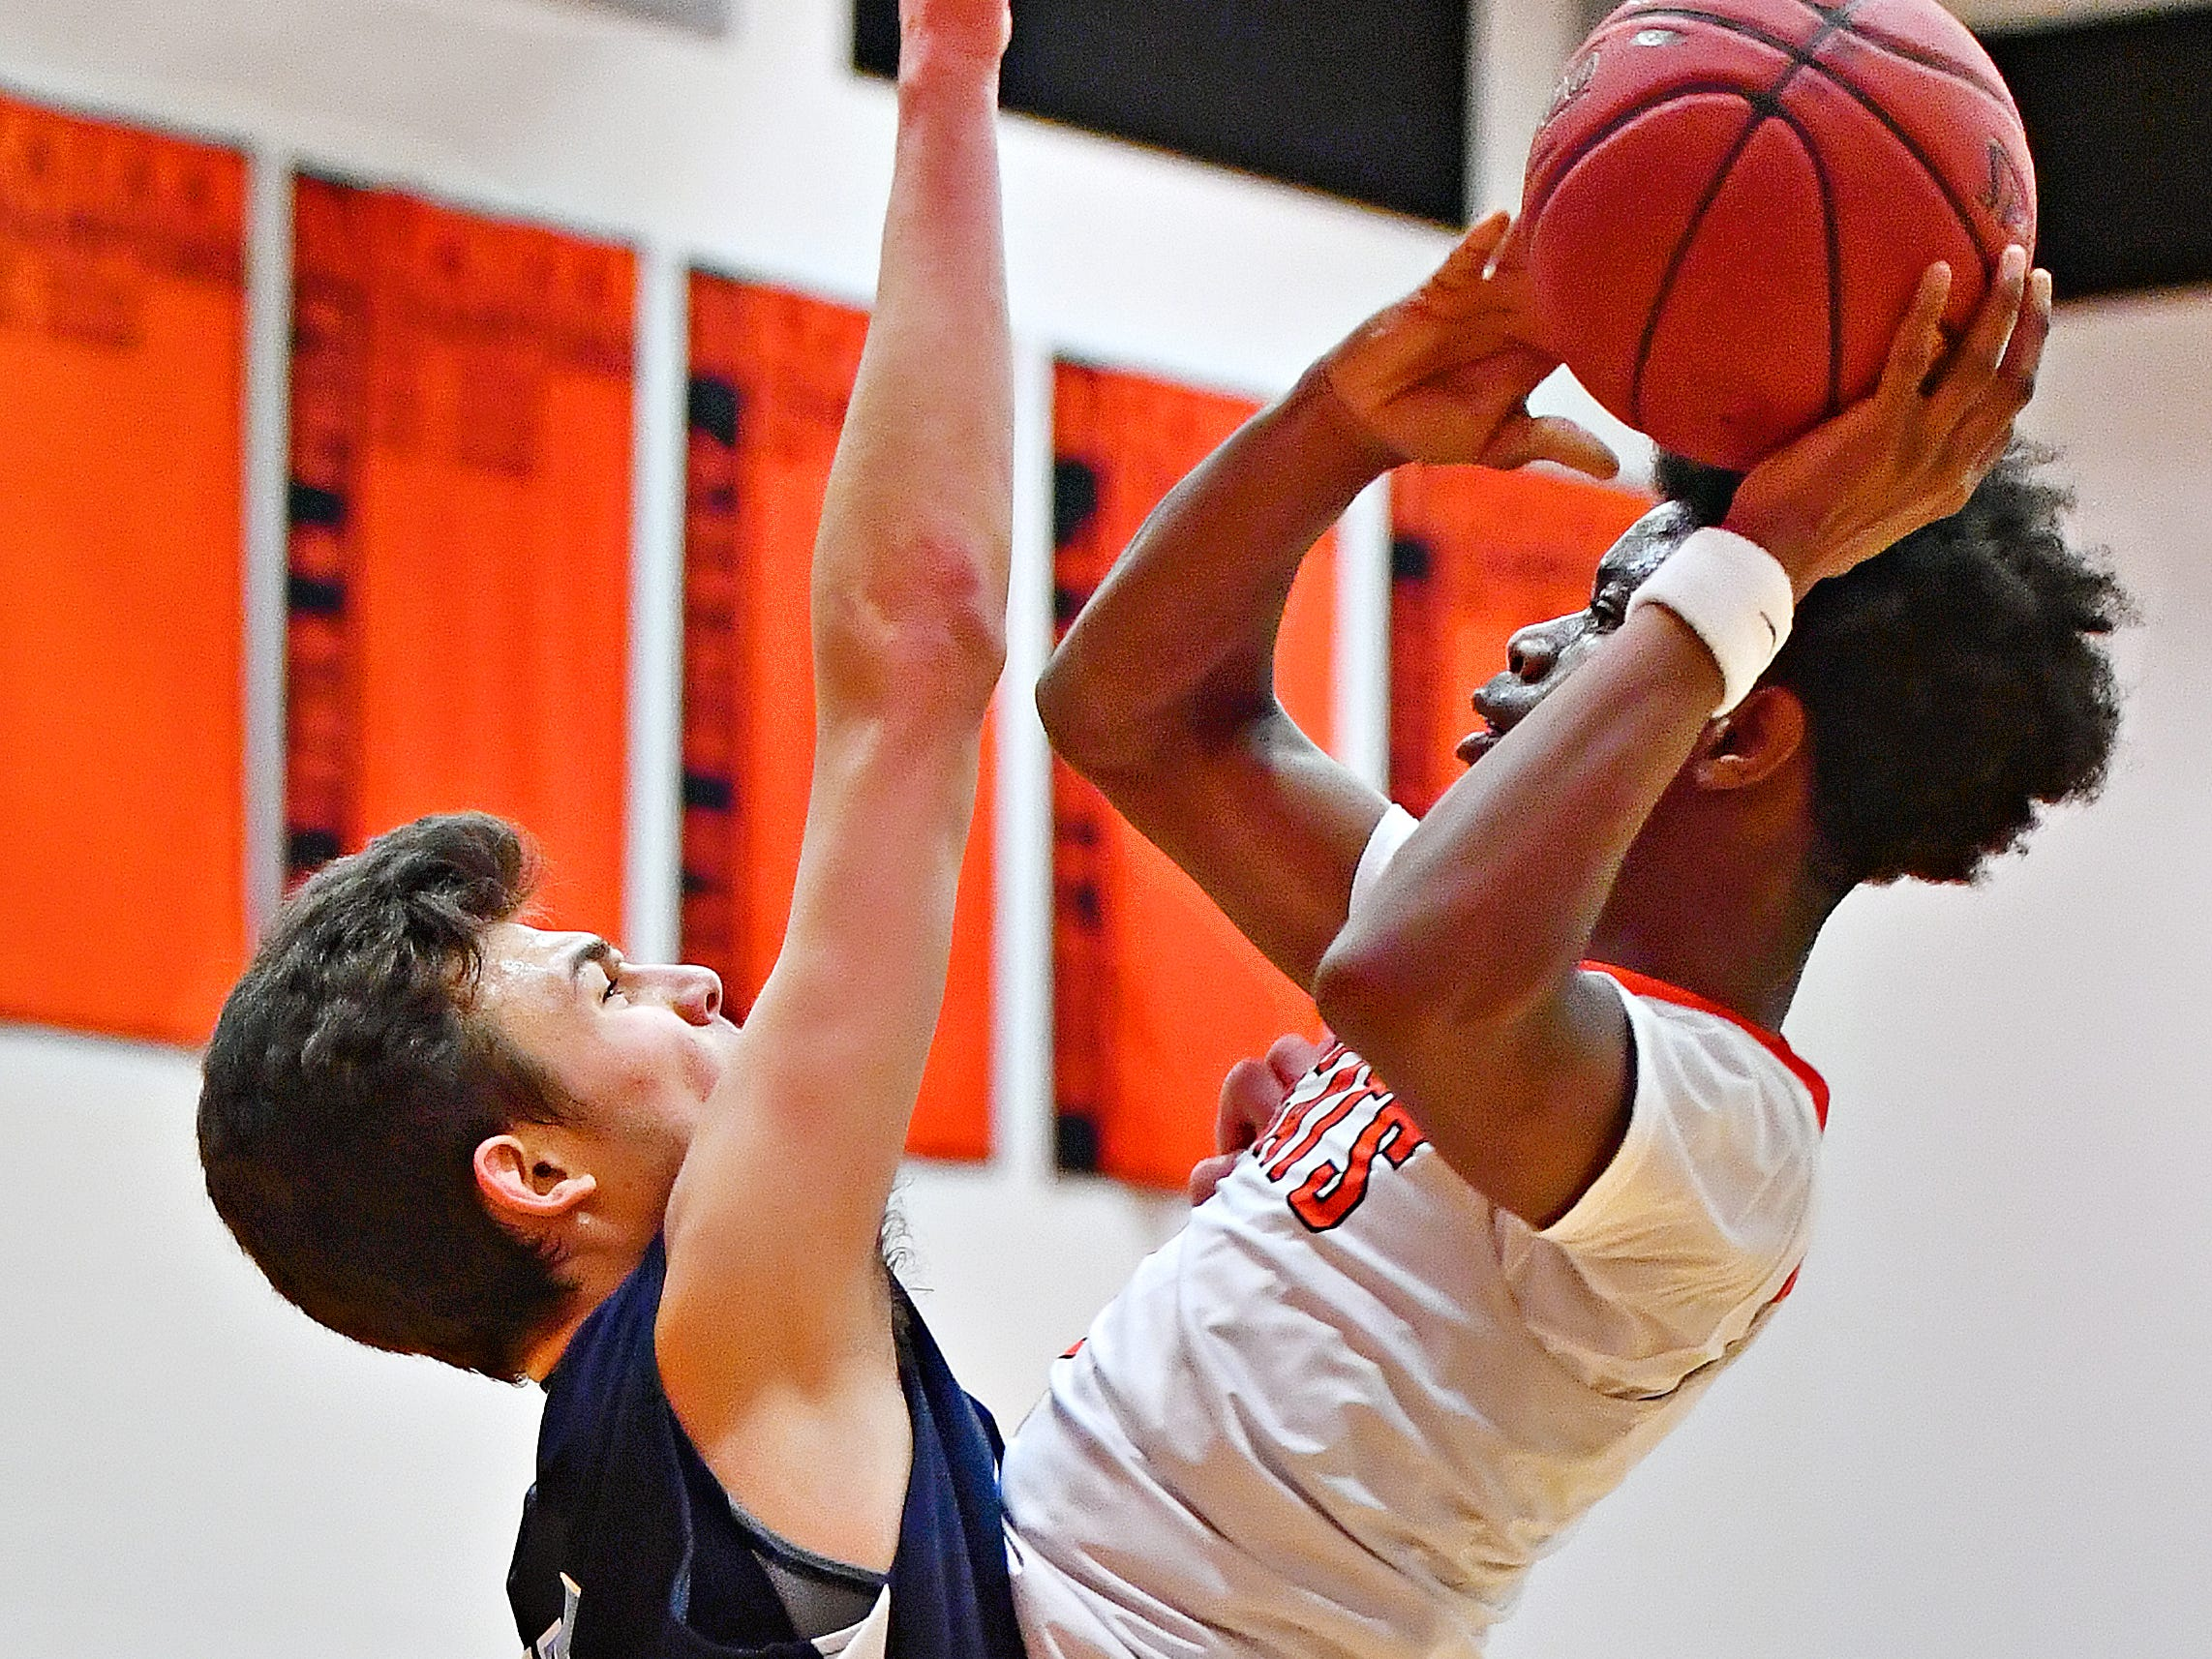 Manheim Township's Tyler Vicidomini, left, stops Northeastern's Quay Mulbah at the basket during basketball action at Northeastern Senior High School in Manchester, Wednesday, Jan. 9, 2019. Northeastern would win the game 47-46. Dawn J. Sagert photo